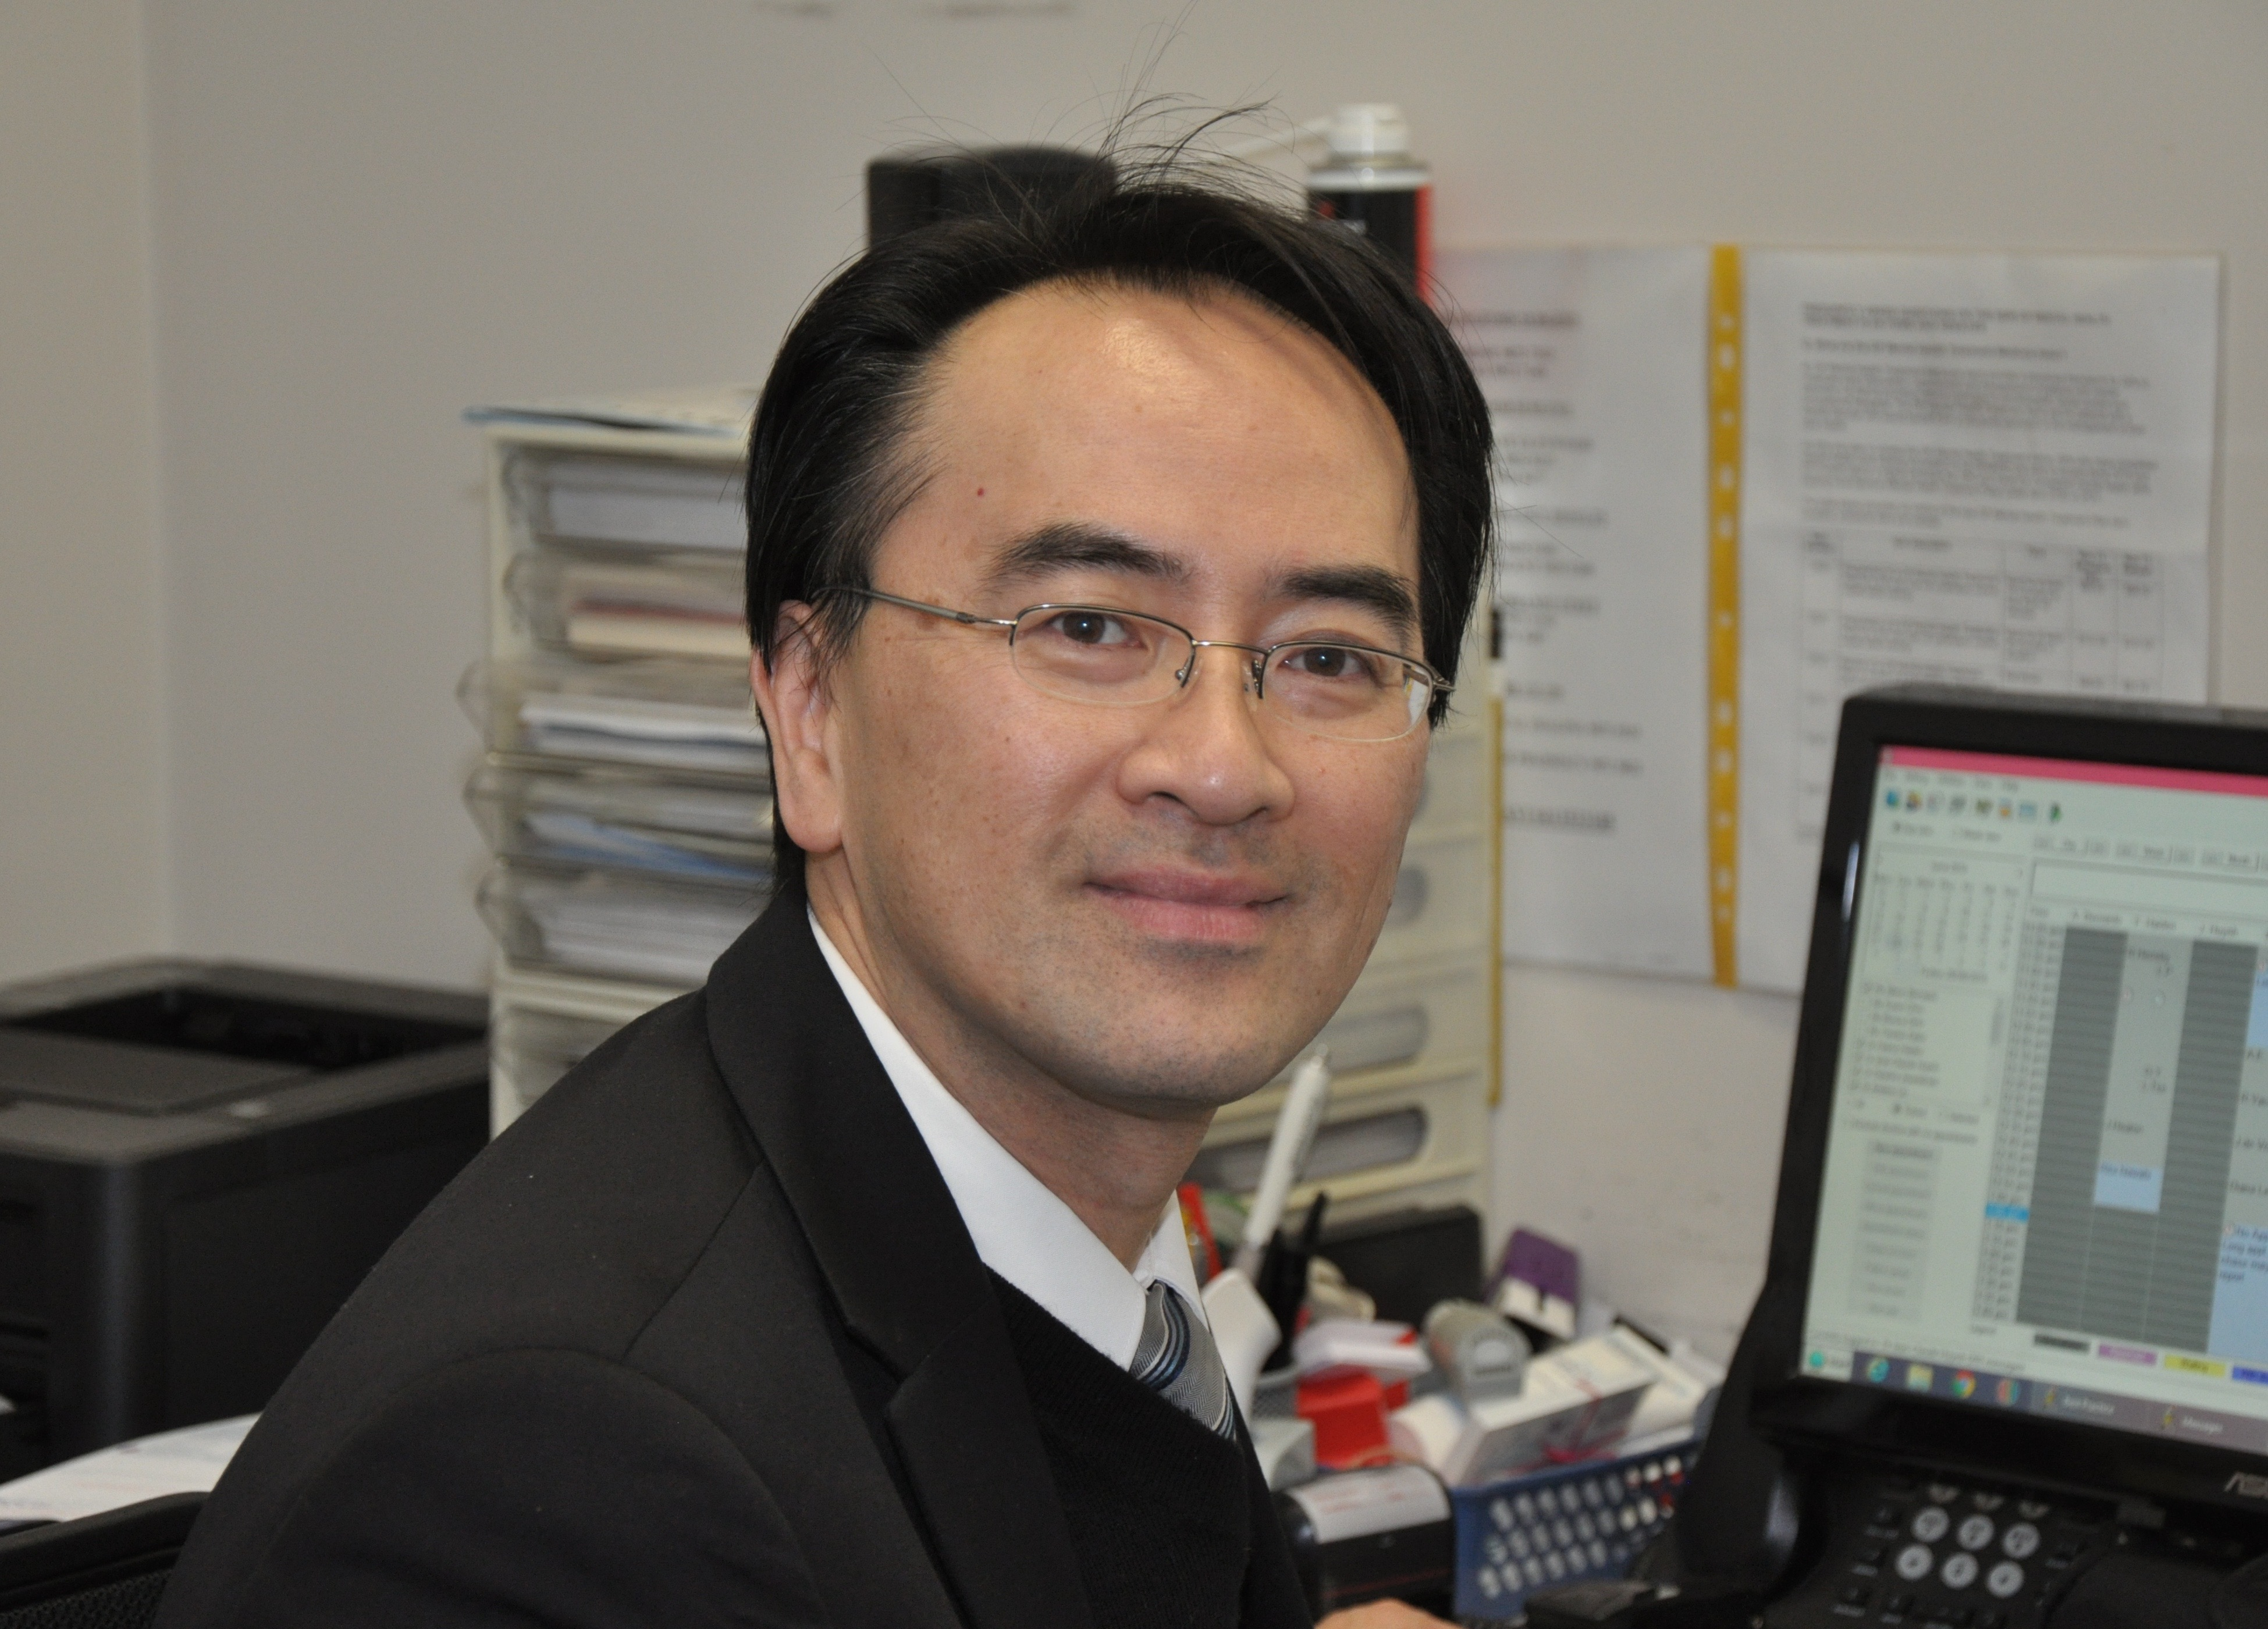 Dr. Jean-Claude Huynh